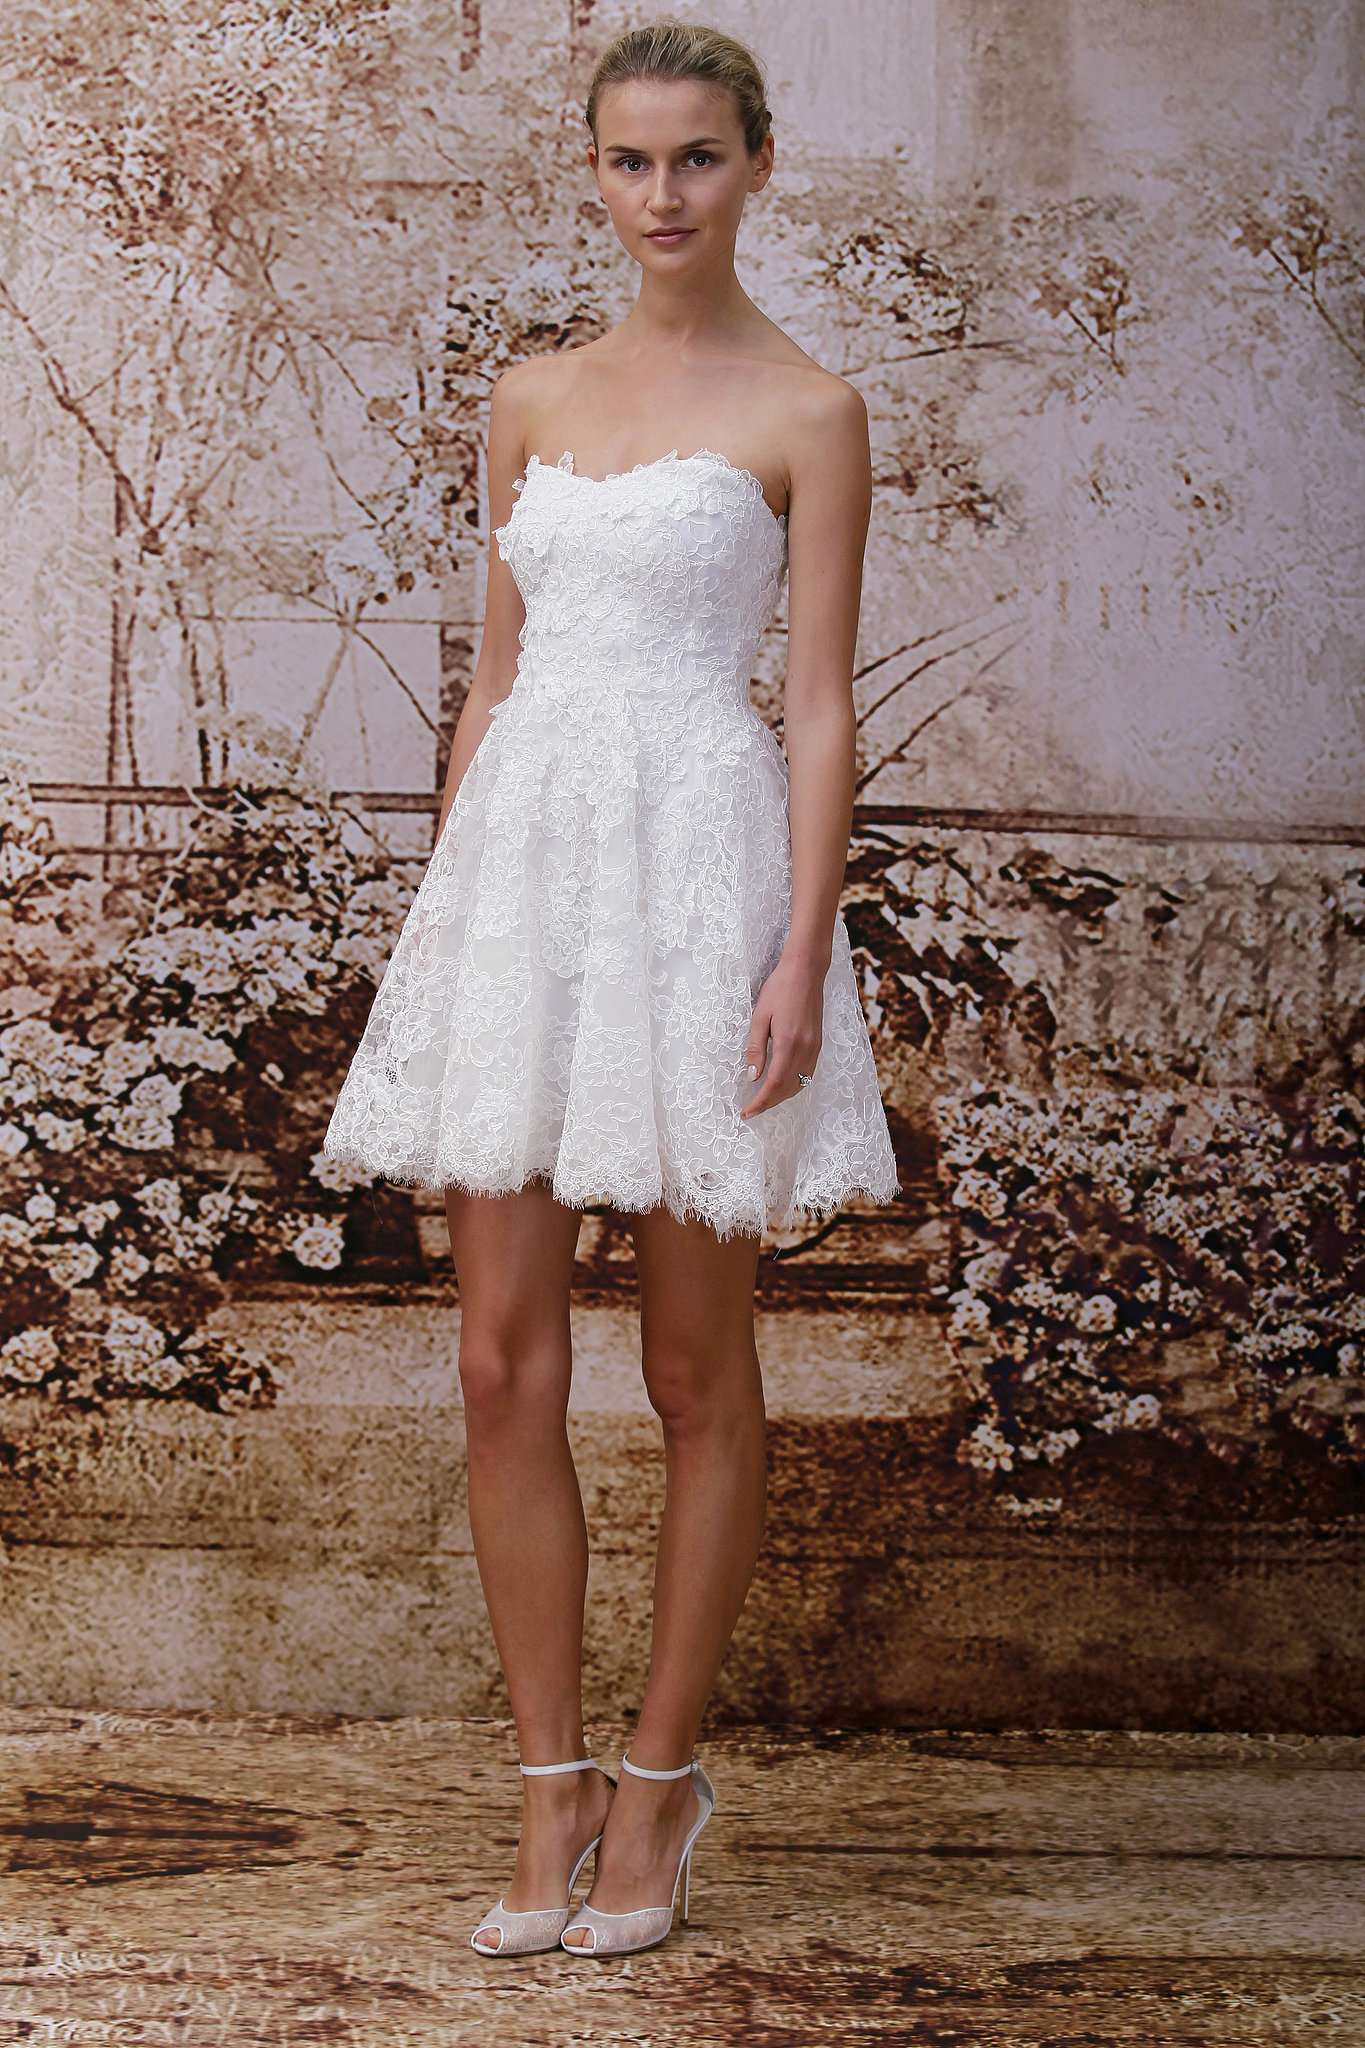 The Bridal Dress Short Bridal Gown Aren t Short in Style and